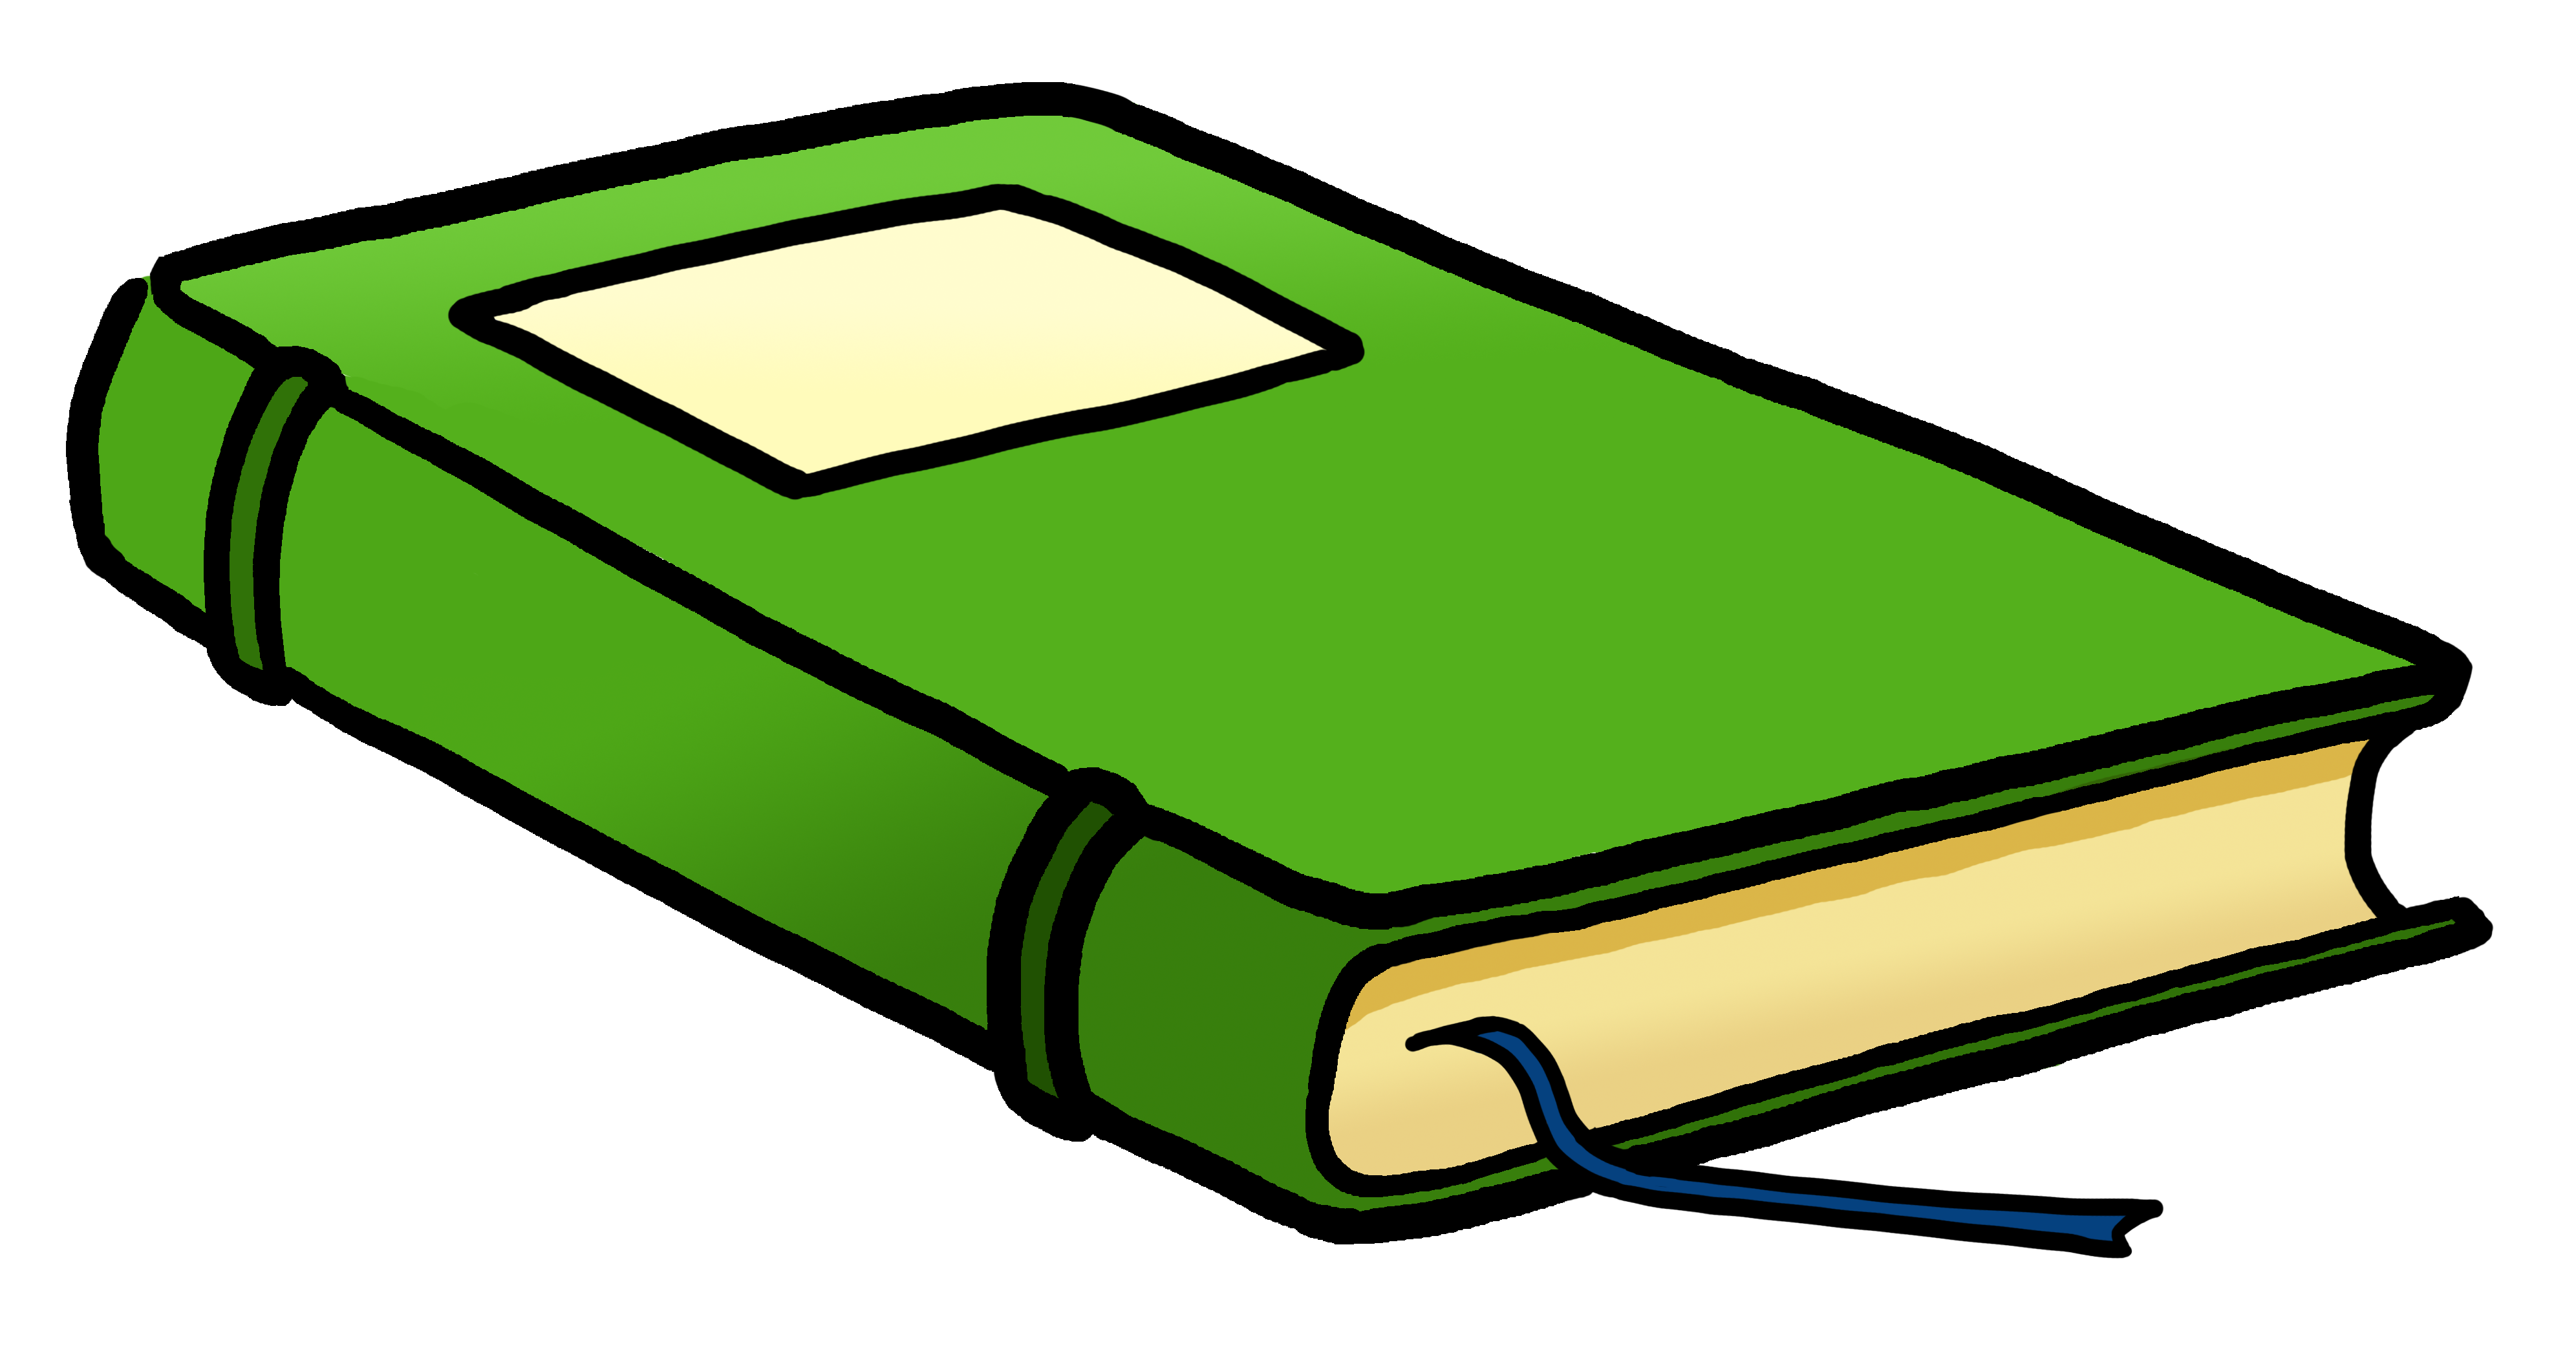 Book Clip Art Pictures